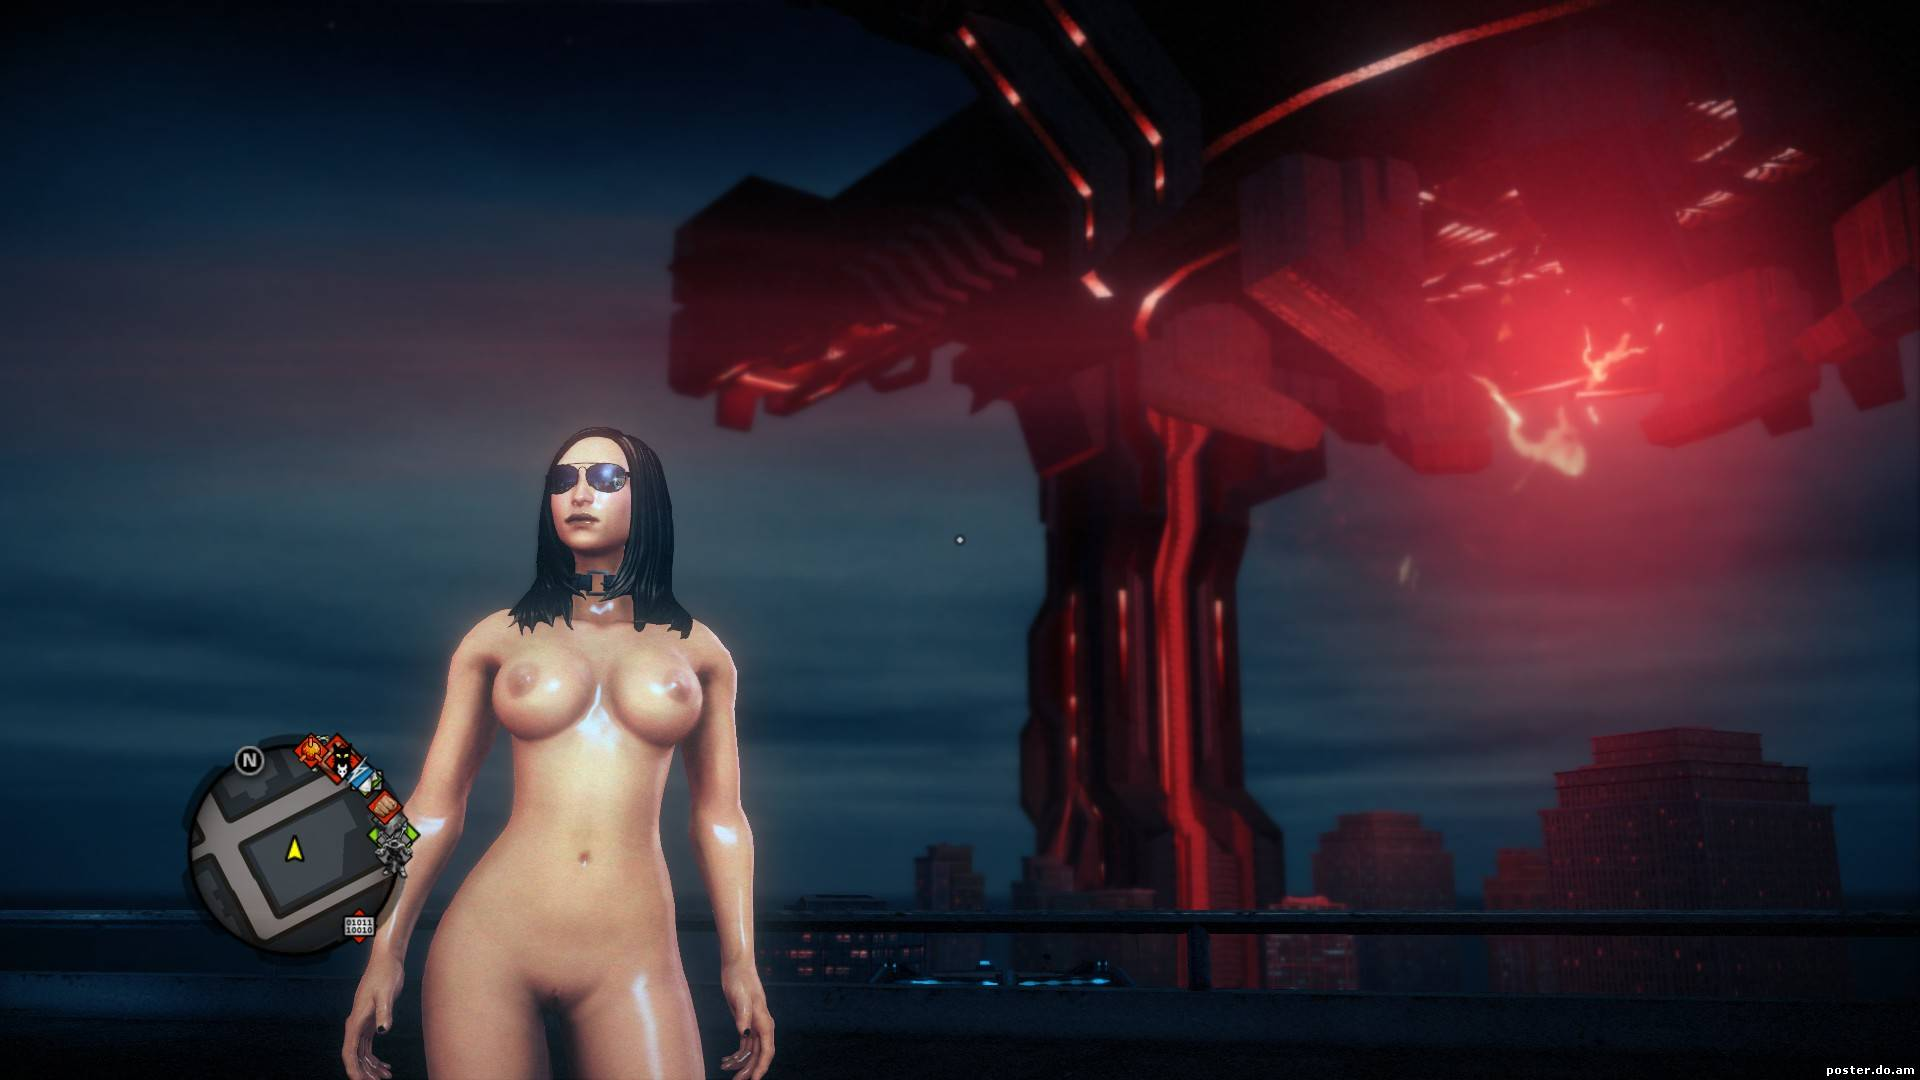 Saints row 4 female nude mod download nude tubes